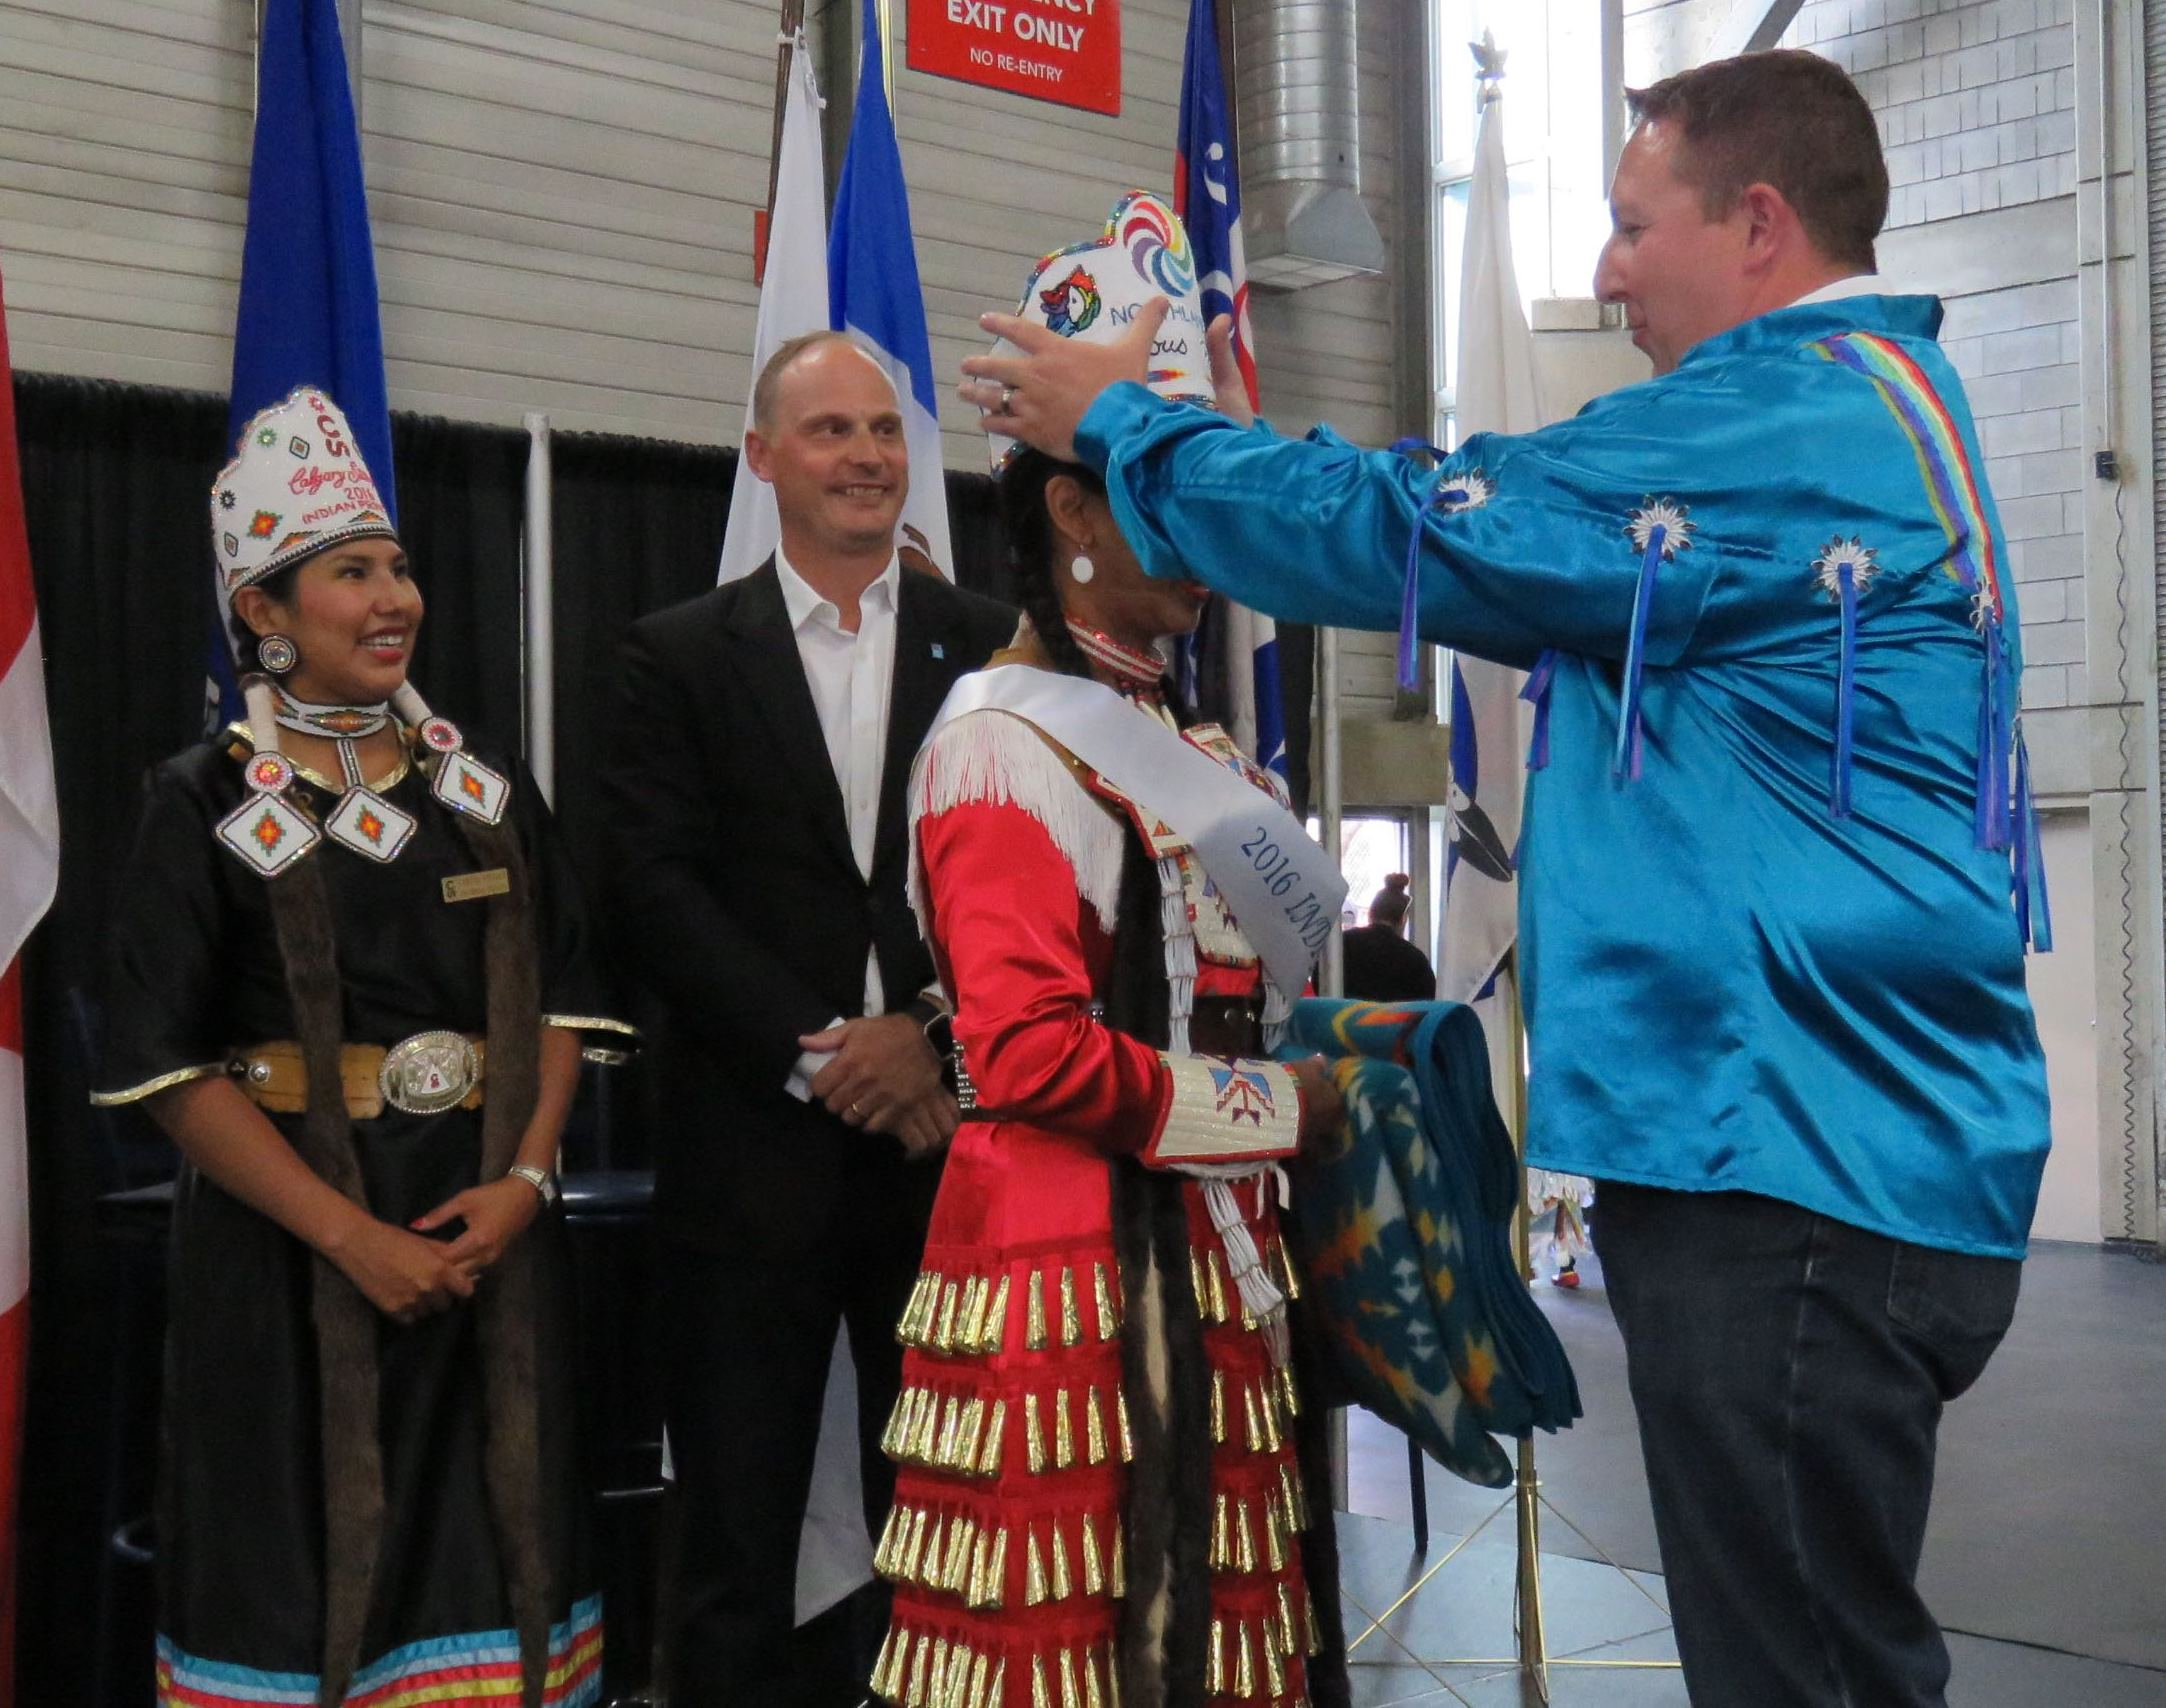 Northlands Preident andw CEO Tim Reid places the crown on the head of the first Indigenous Princess Pageant winner, Britney Pastion during the final afternoon of K-Days 2016.